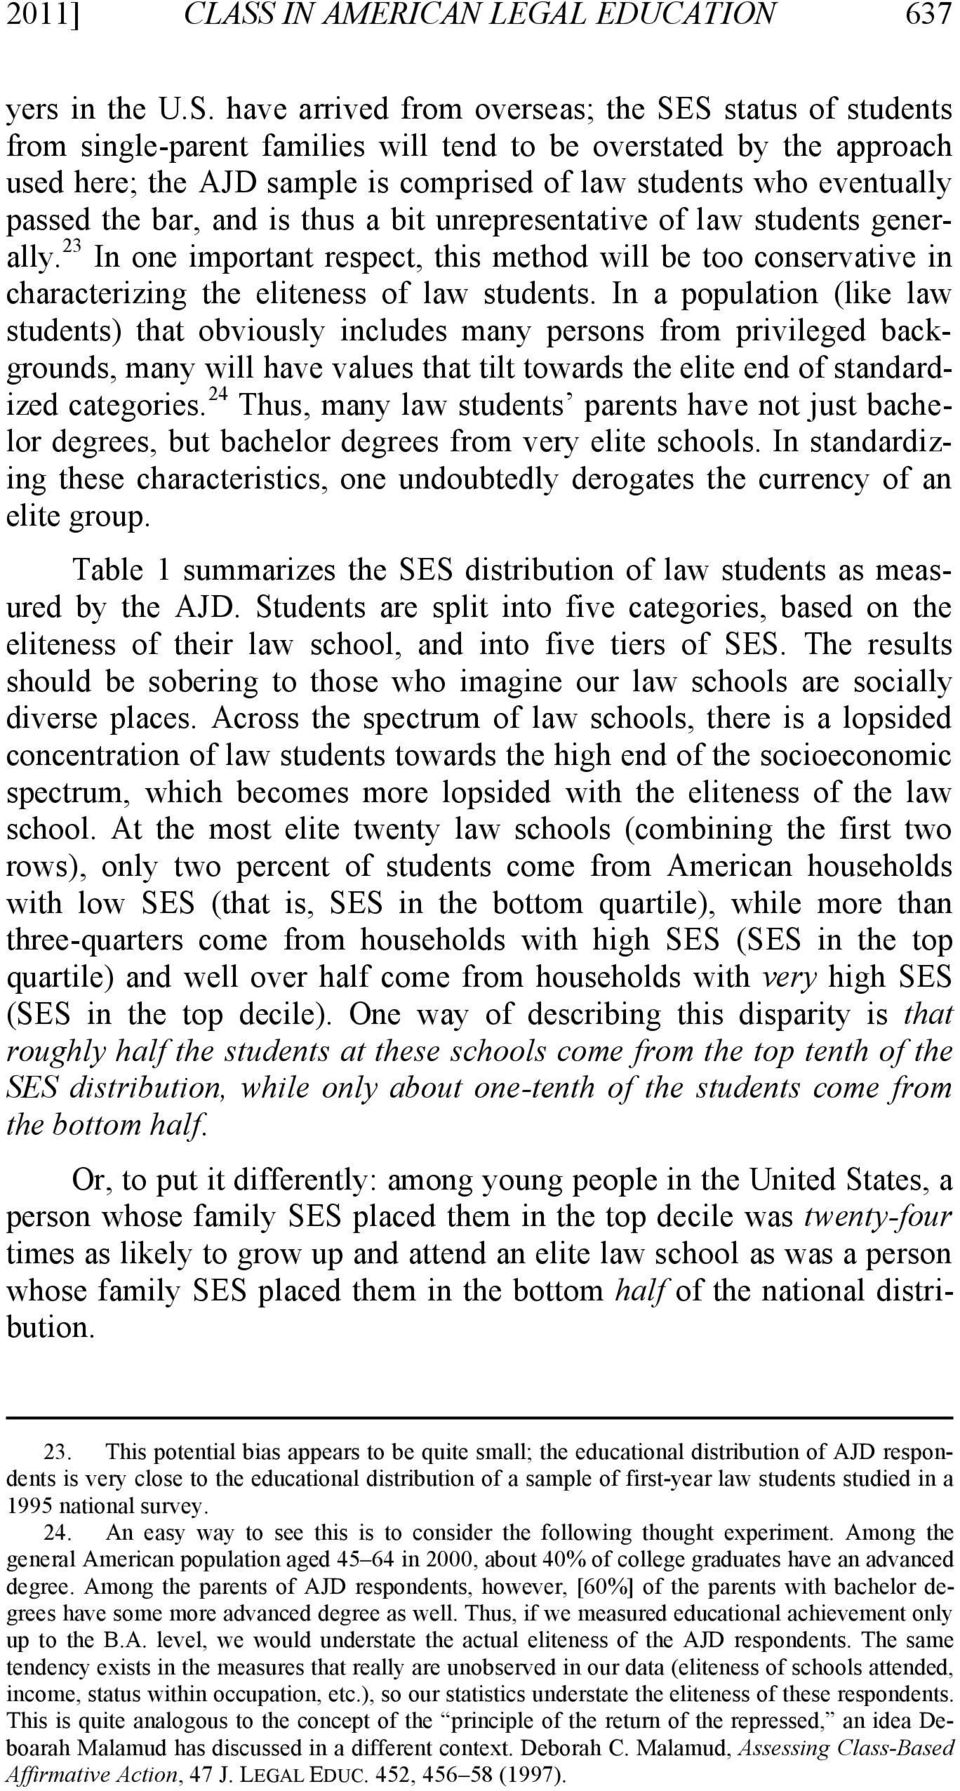 have arrived from overseas; the SES status of students from single-parent families will tend to be overstated by the approach used here; the AJD sample is comprised of law students who eventually